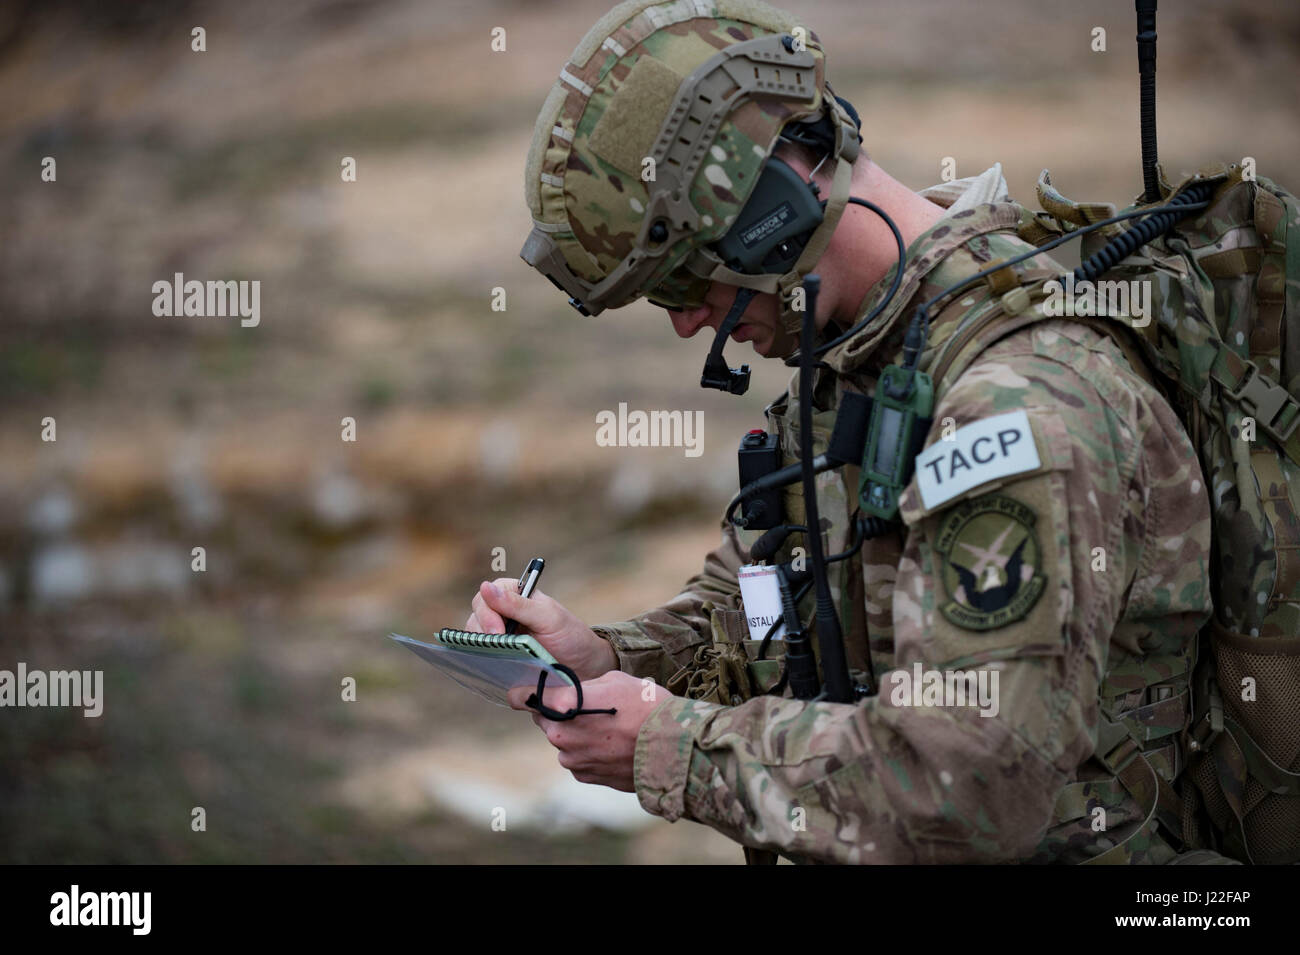 us air force senior airman brandon malinowski 19th air support operations squadron tactical air control party specialist records coordinates during a